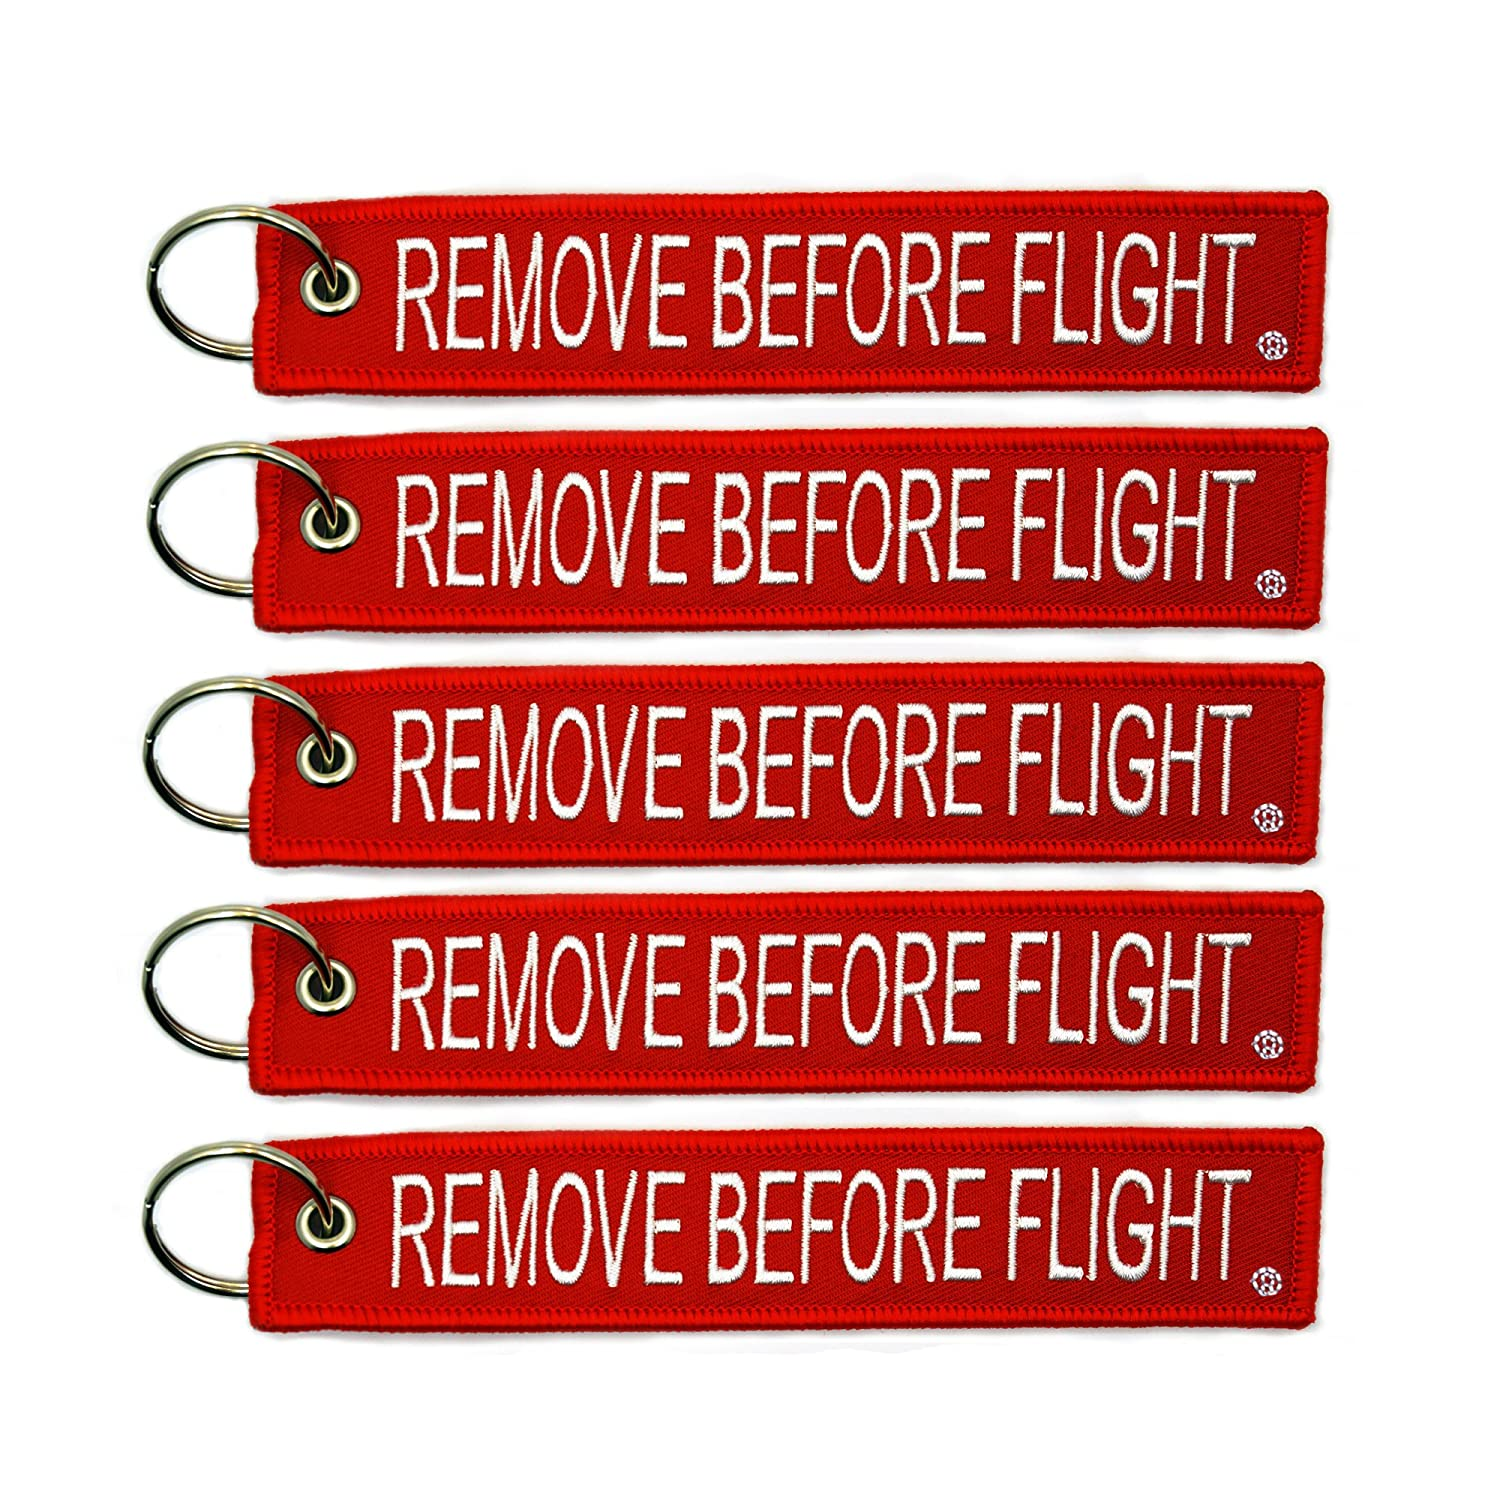 5x Remove Before Flight Key Chain Aviation Truck Motorcycle Pilot Crew Tag Boat by Power Bulbs